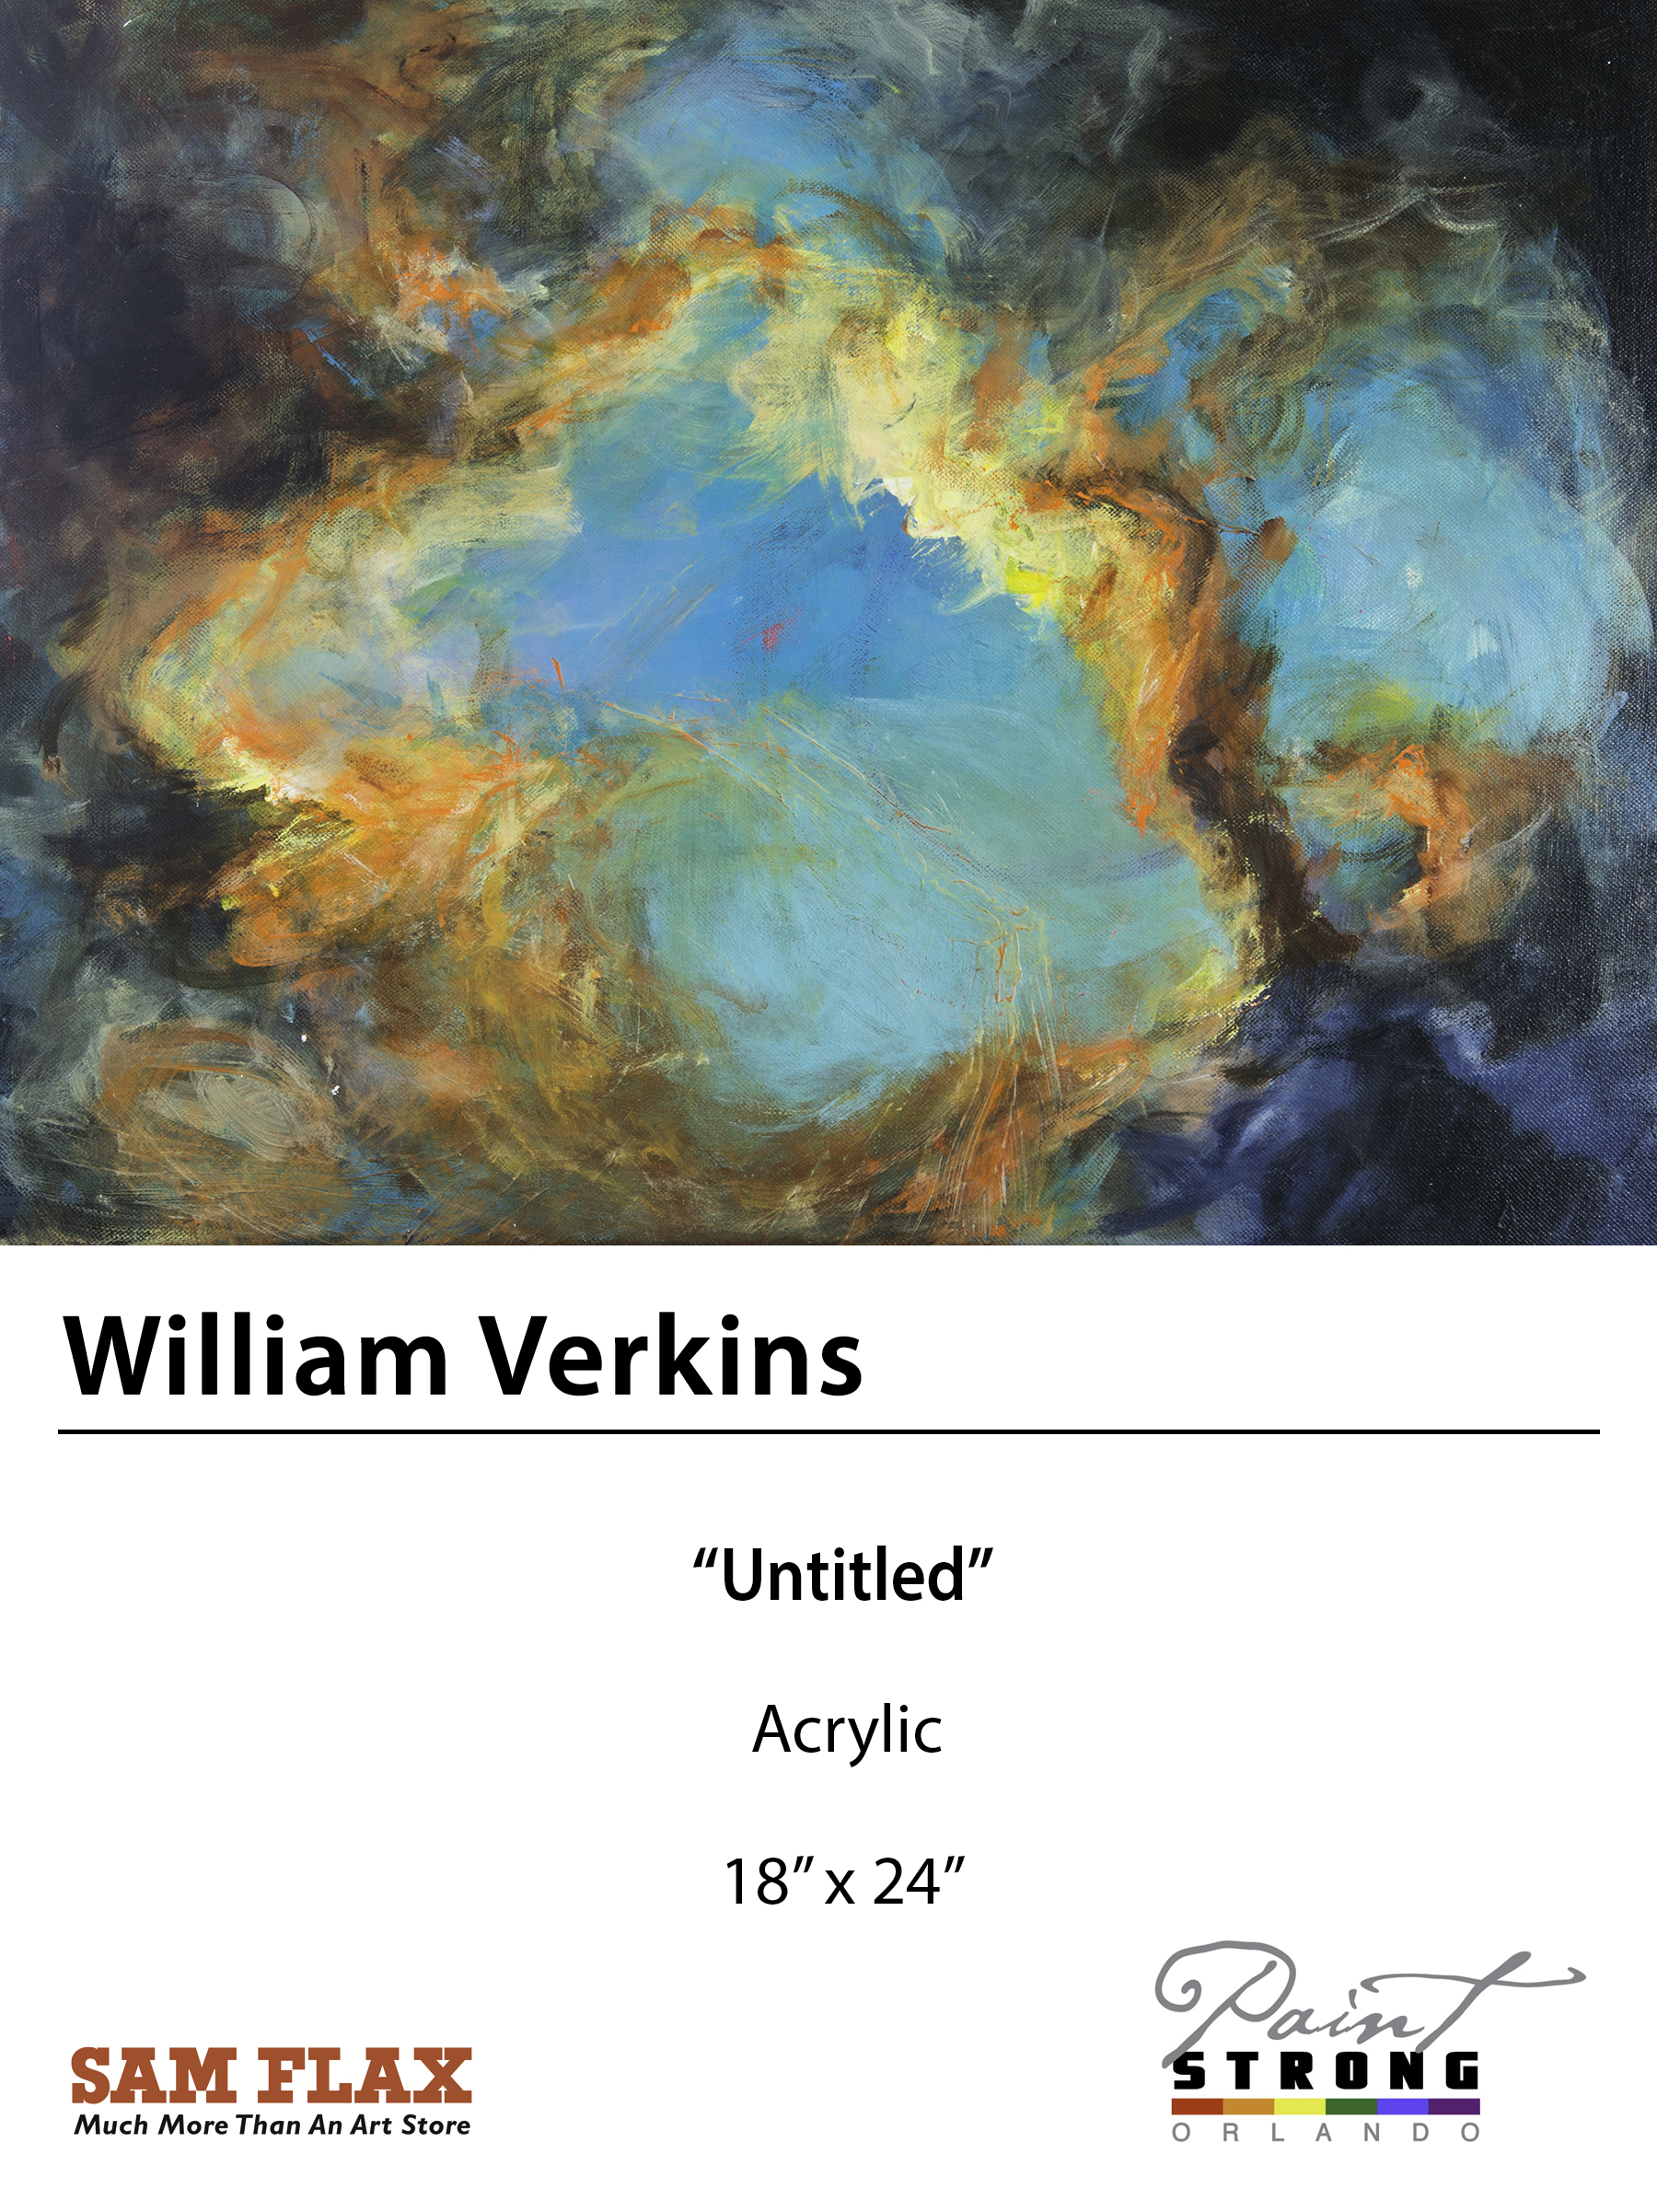 William Verkins